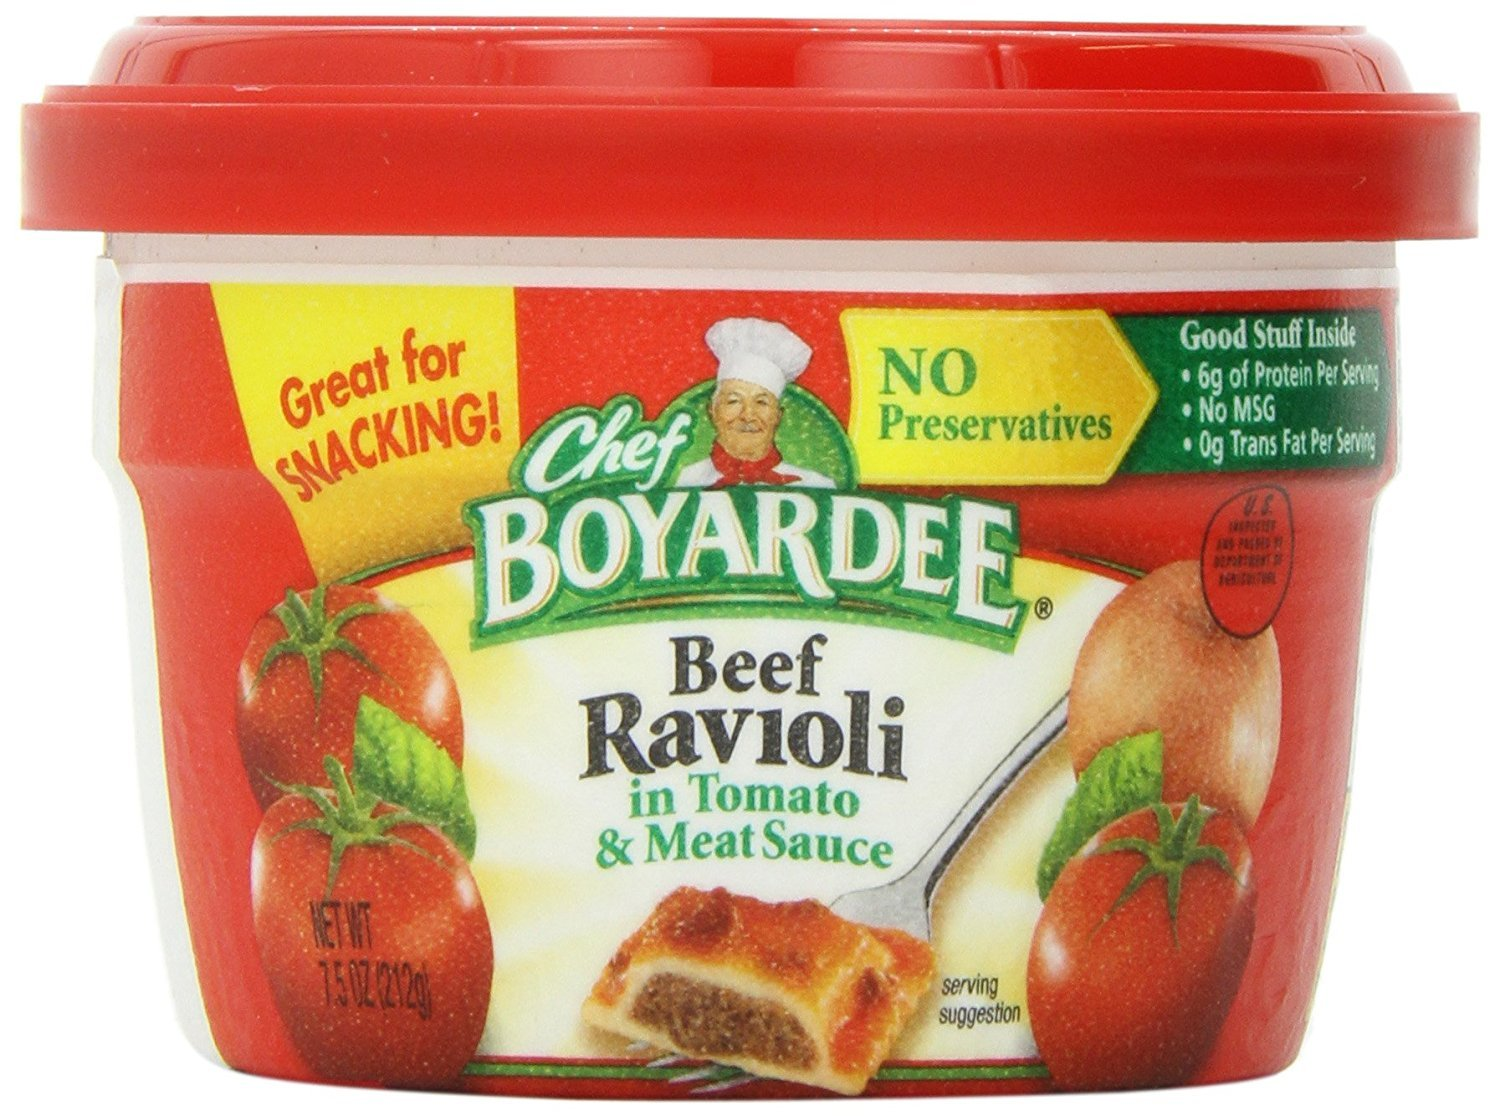 Chef Boyardee Beef in Tomato & Meat Sauce Ravioli, 7.5 Oz. (Pack of 12)